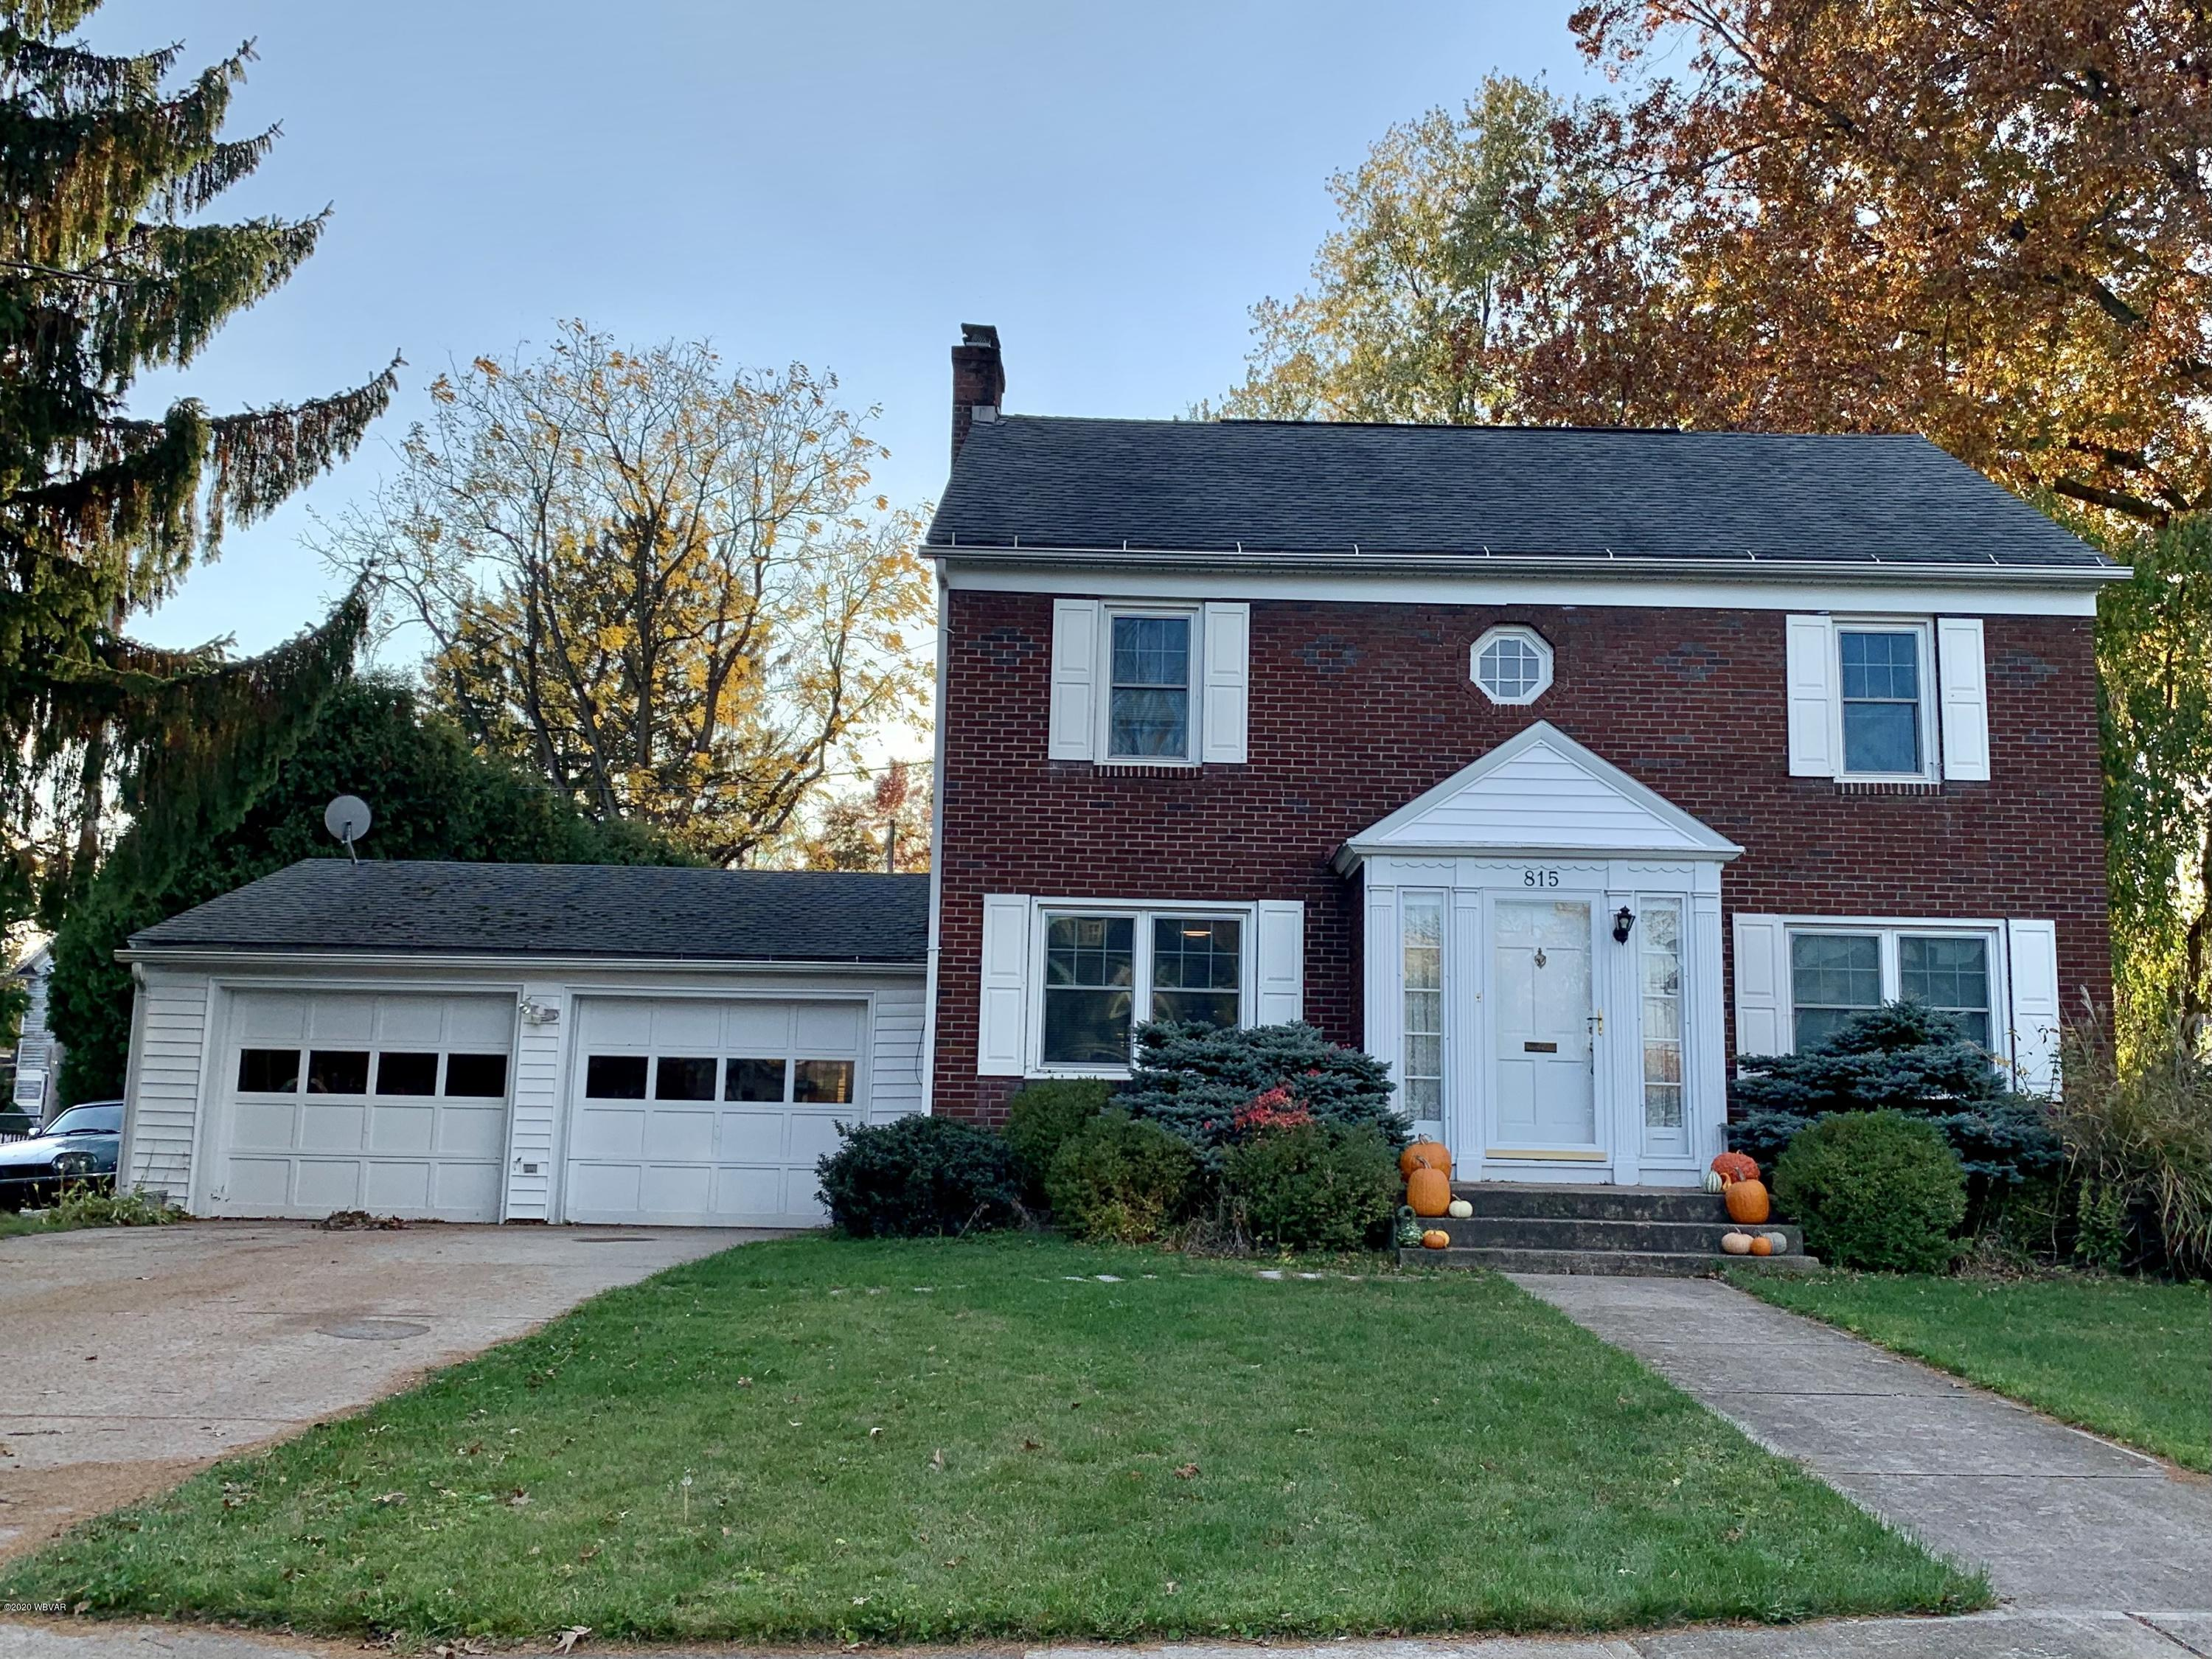 815 FAXON PARKWAY, Williamsport, PA 17701, 3 Bedrooms Bedrooms, ,1.5 BathroomsBathrooms,Residential,For sale,FAXON,WB-91404